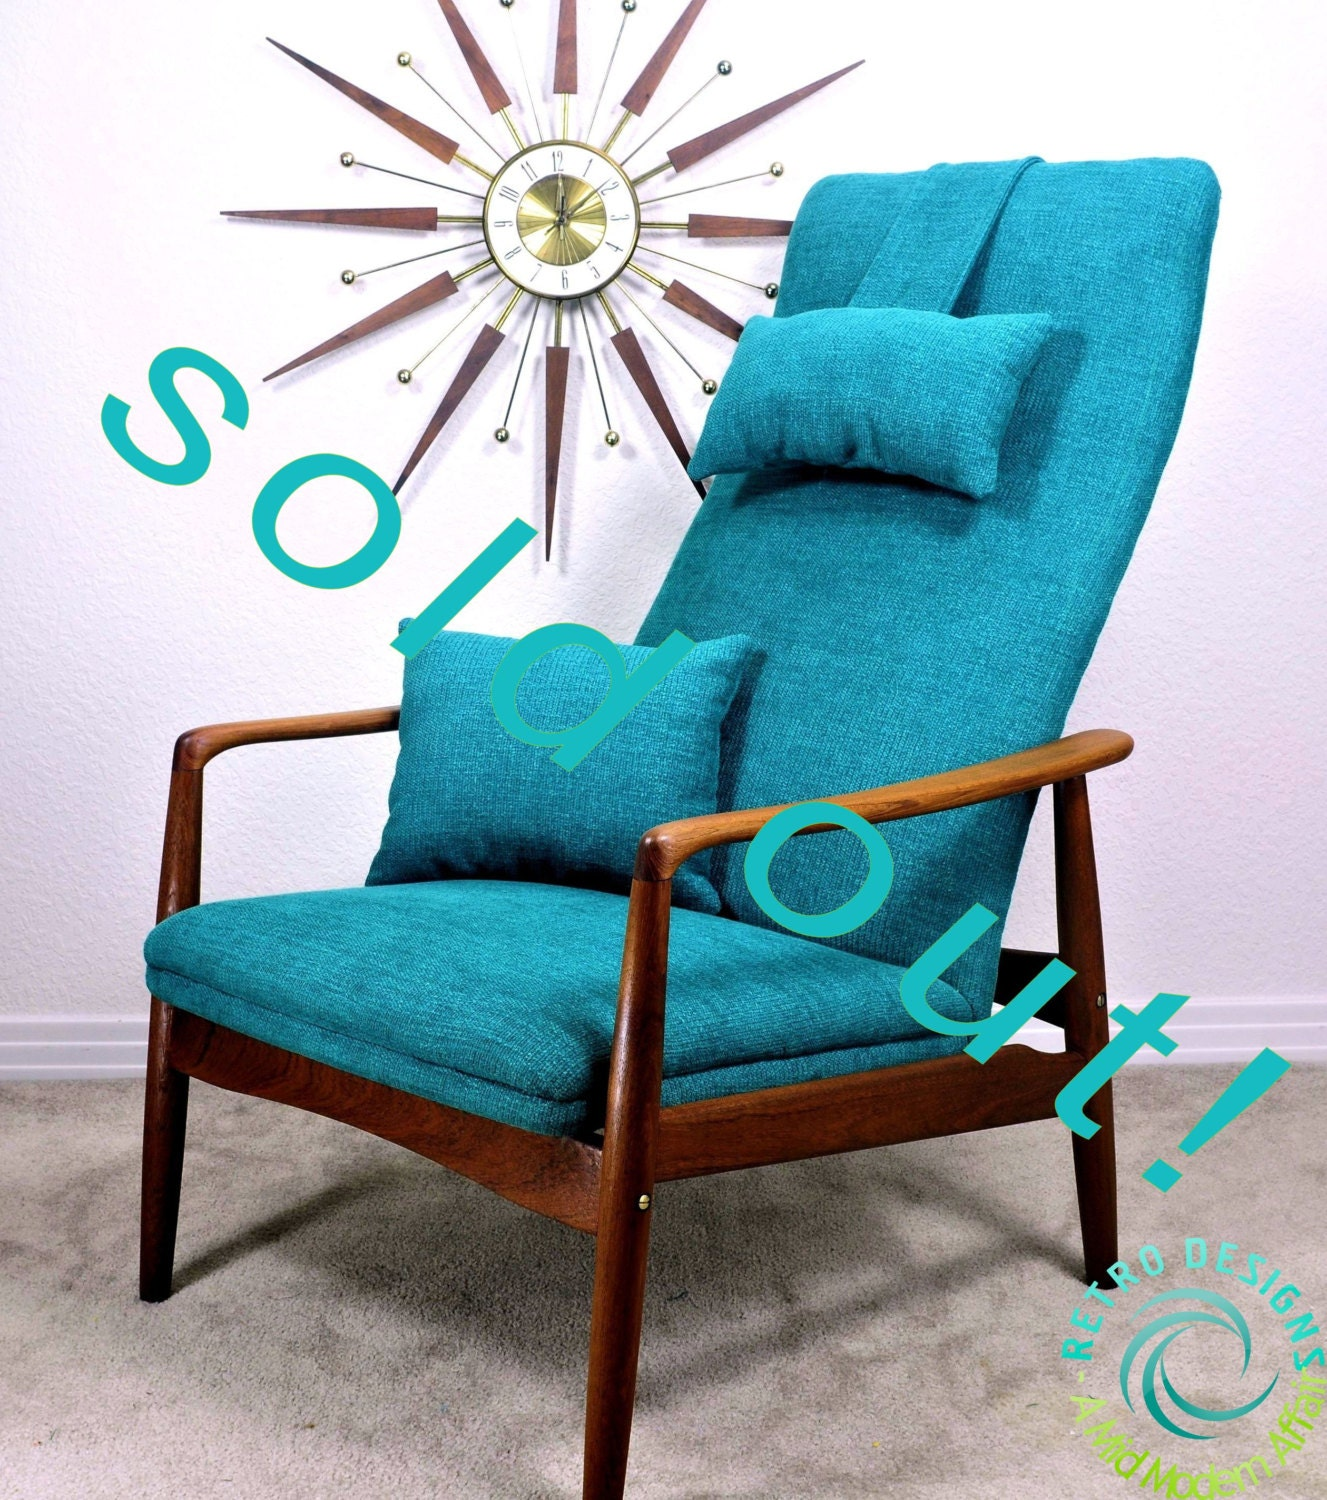 Sold Out Restored Vintage Danish Mid Century Retro Teak